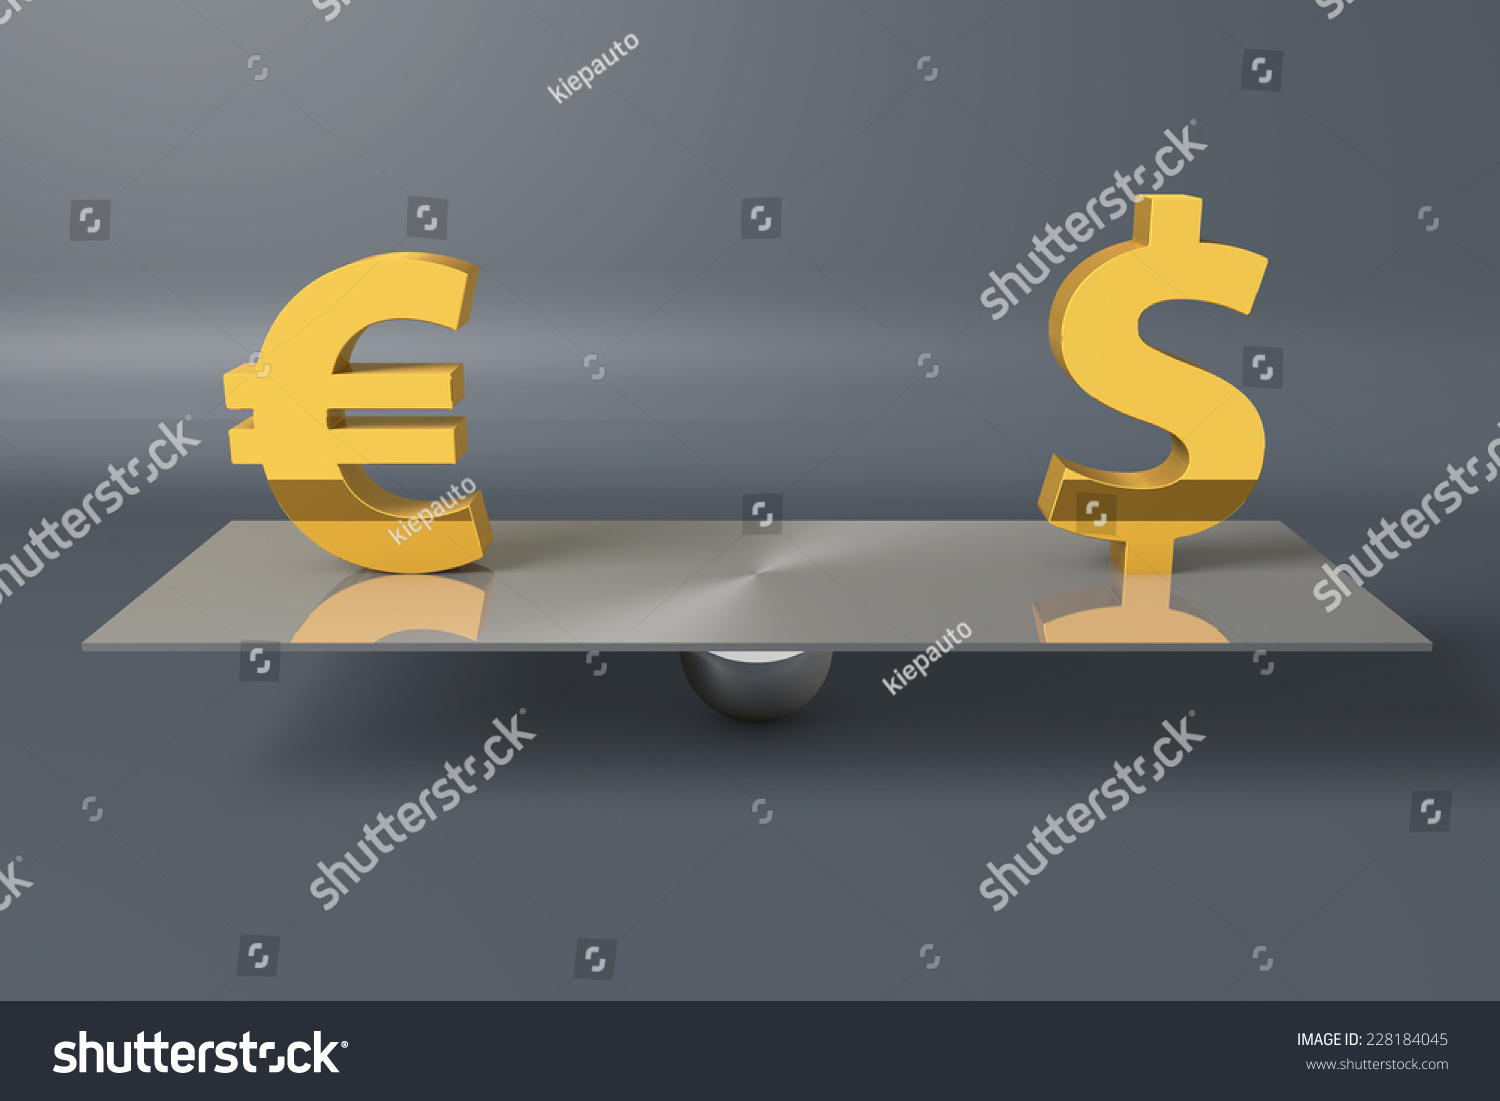 Currency symbols on balance scale stock illustration 228184045 currency symbols on a balance scale biocorpaavc Choice Image